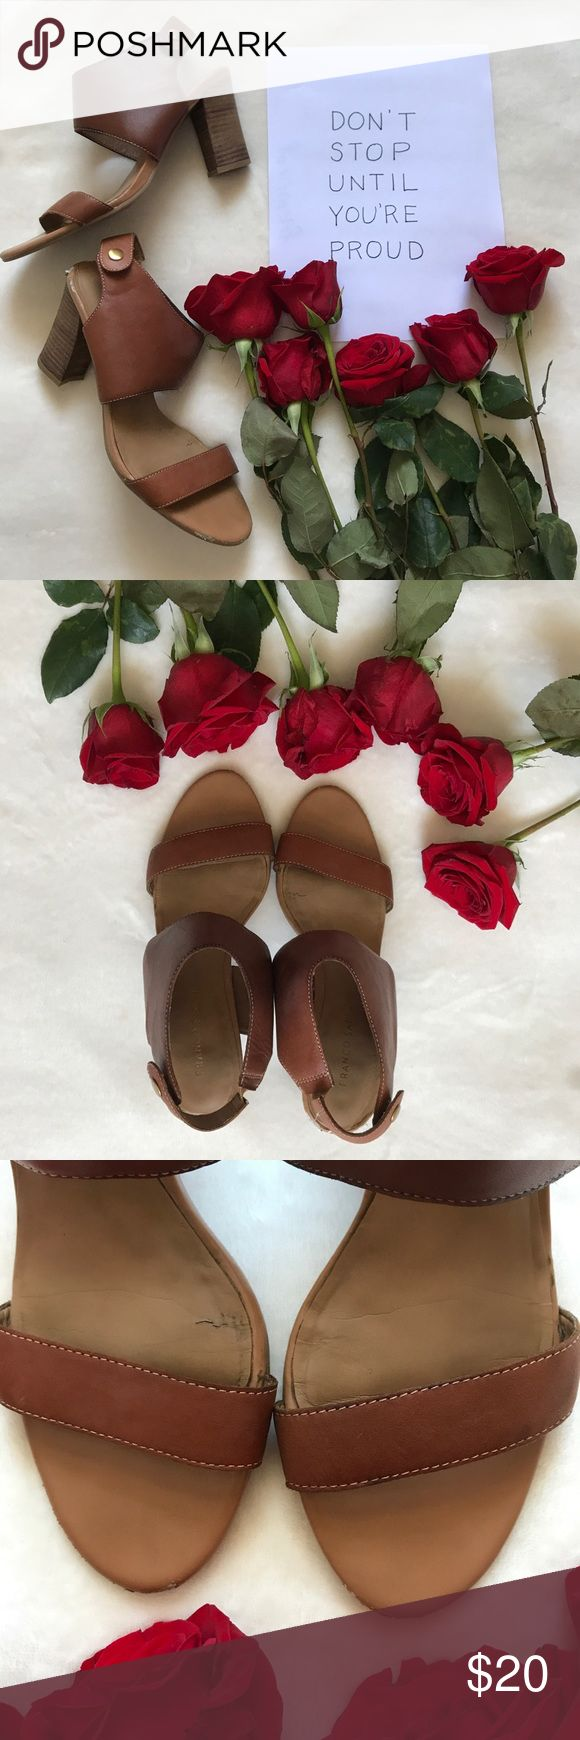 Franco Sarto sandals 🌺 Franco Sarto tan/brown heeled sandals. Leather upper, balance man made. Used, see pictures for some marks&scuffs - which is reflected in the price 😊 Still a lot of life left in these and they're perfect for the summer with dresses or white jeans! Franco Sarto Shoes Sandals